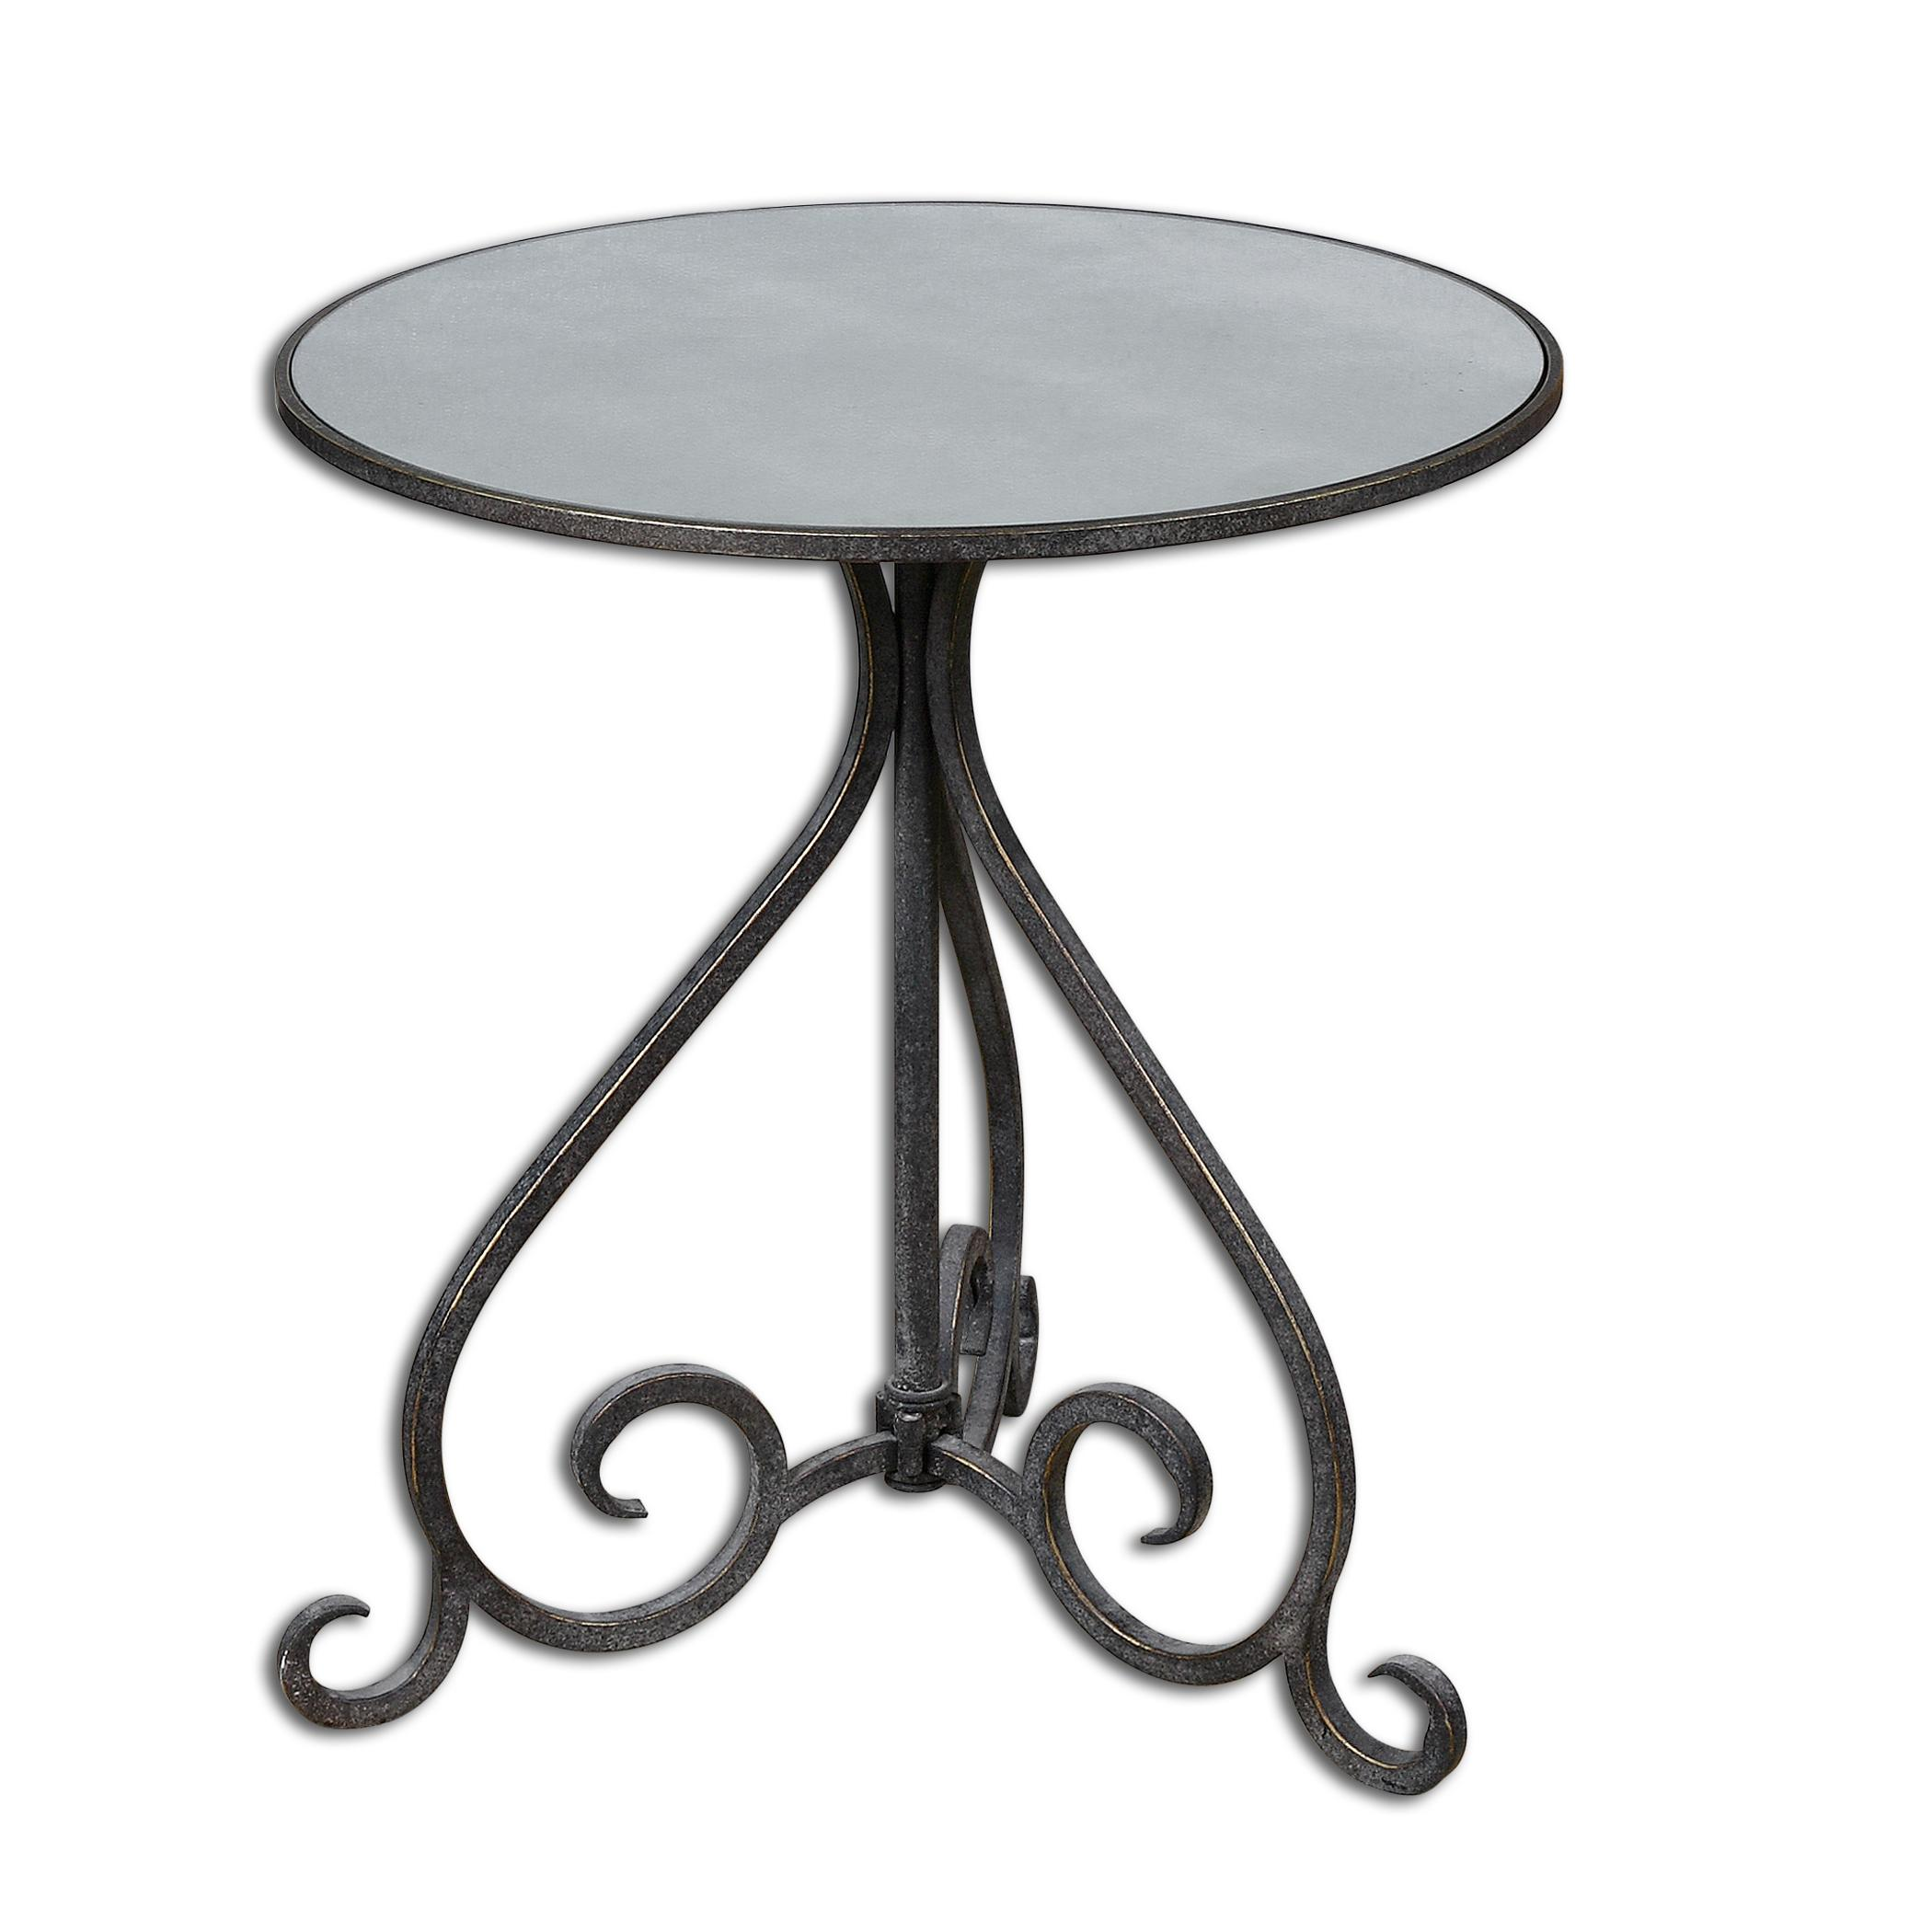 Uttermost Accent Furniture Poloa Mirrored Accent Table - Item Number: 24380